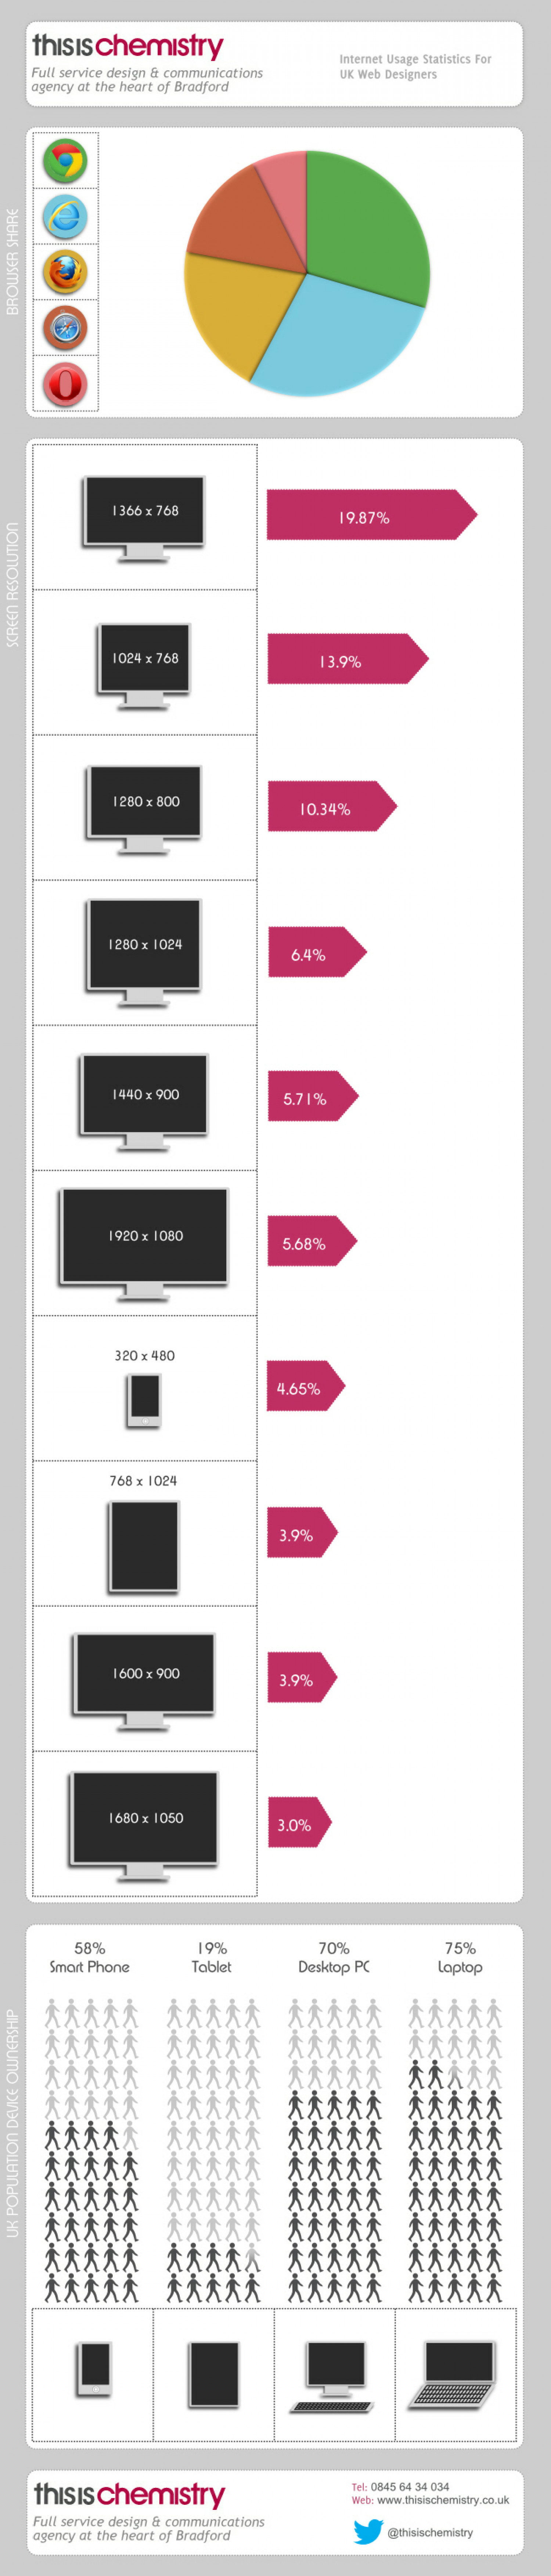 Browser And Resolution Statistics For Web Designers Infographic